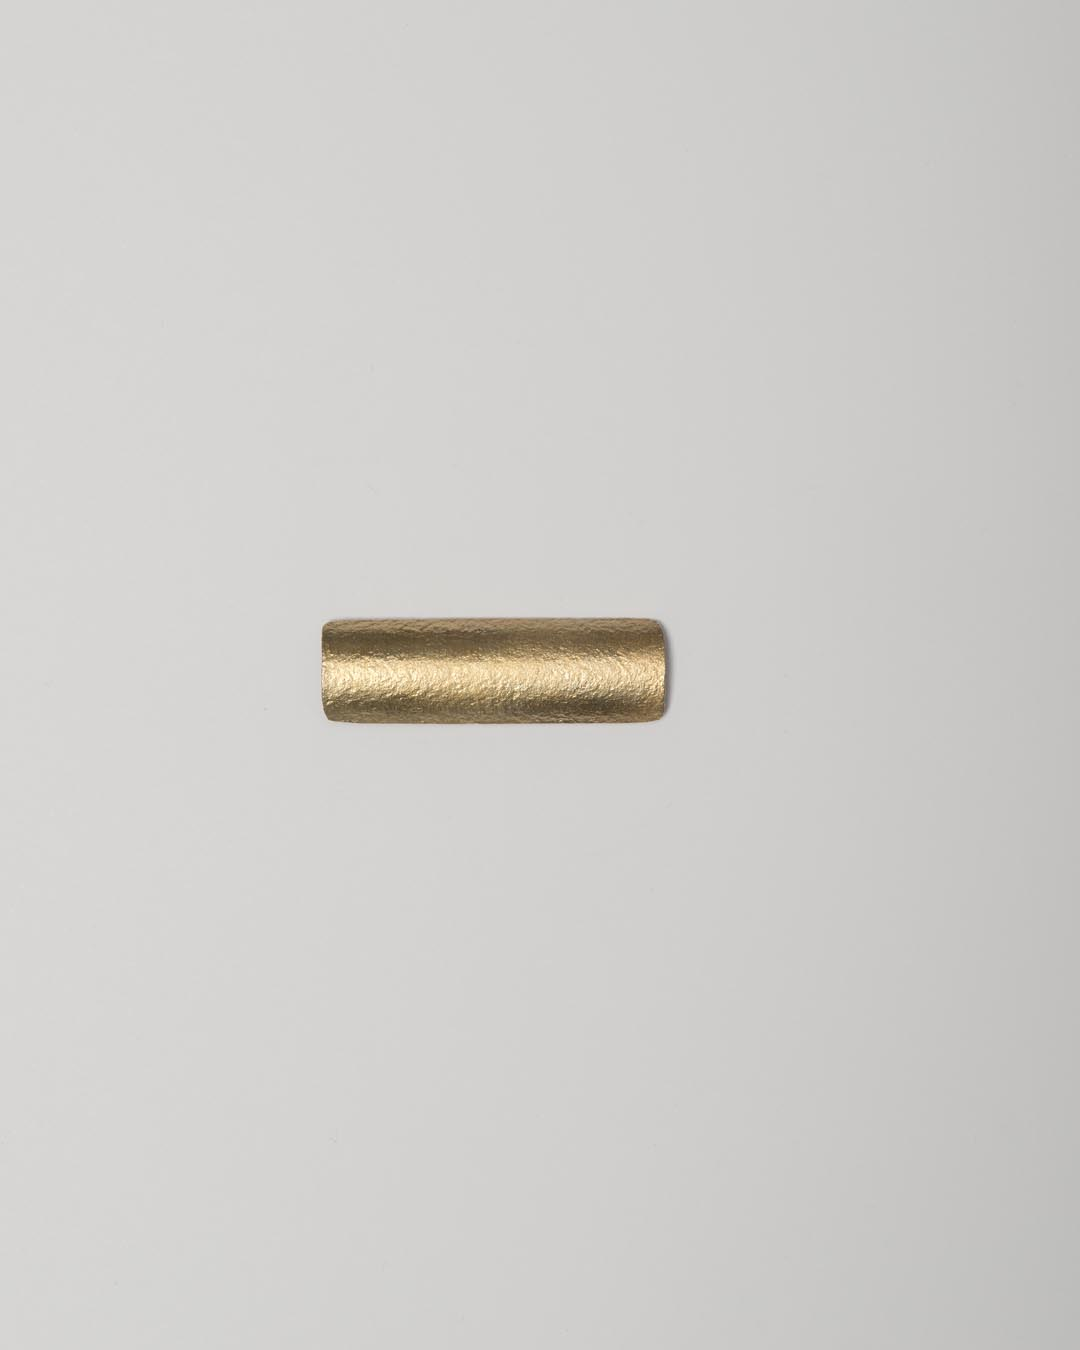 Yasuki Hiramatsu, untitled, brooch; gold-plated silver, 14.5 x 47 x 8 mm, €625